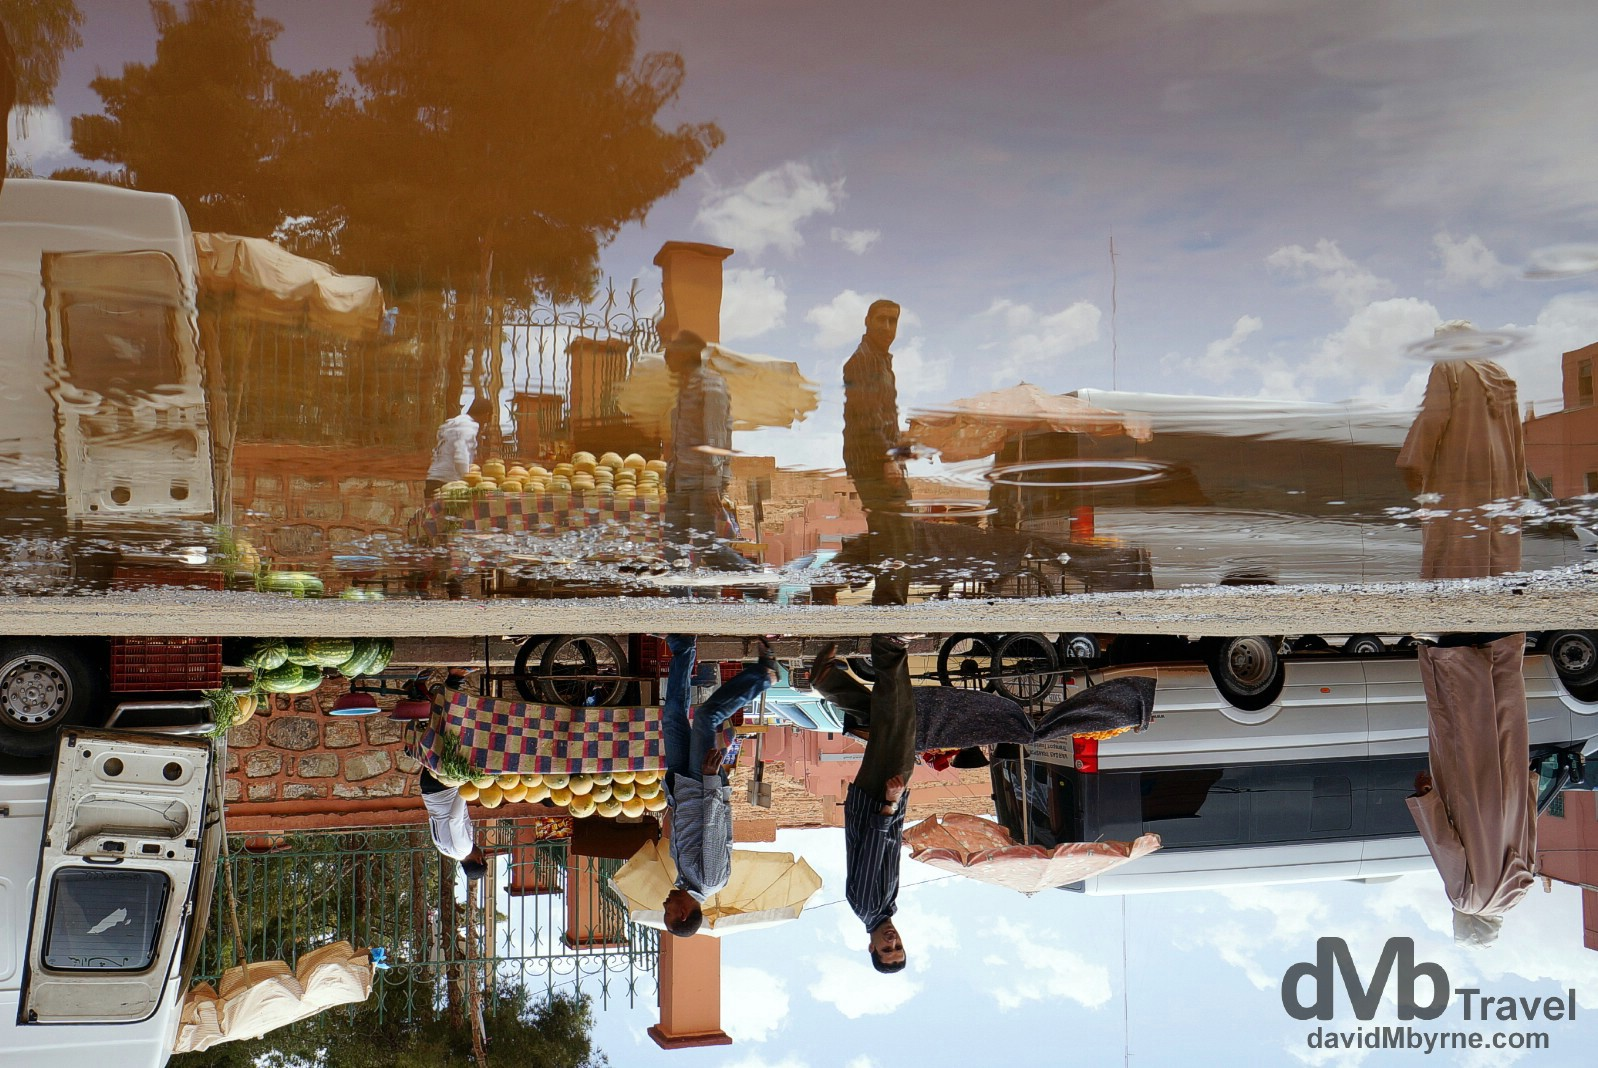 Reflections on the streets of Tinerhir, Morocco. May 17th, 2014.